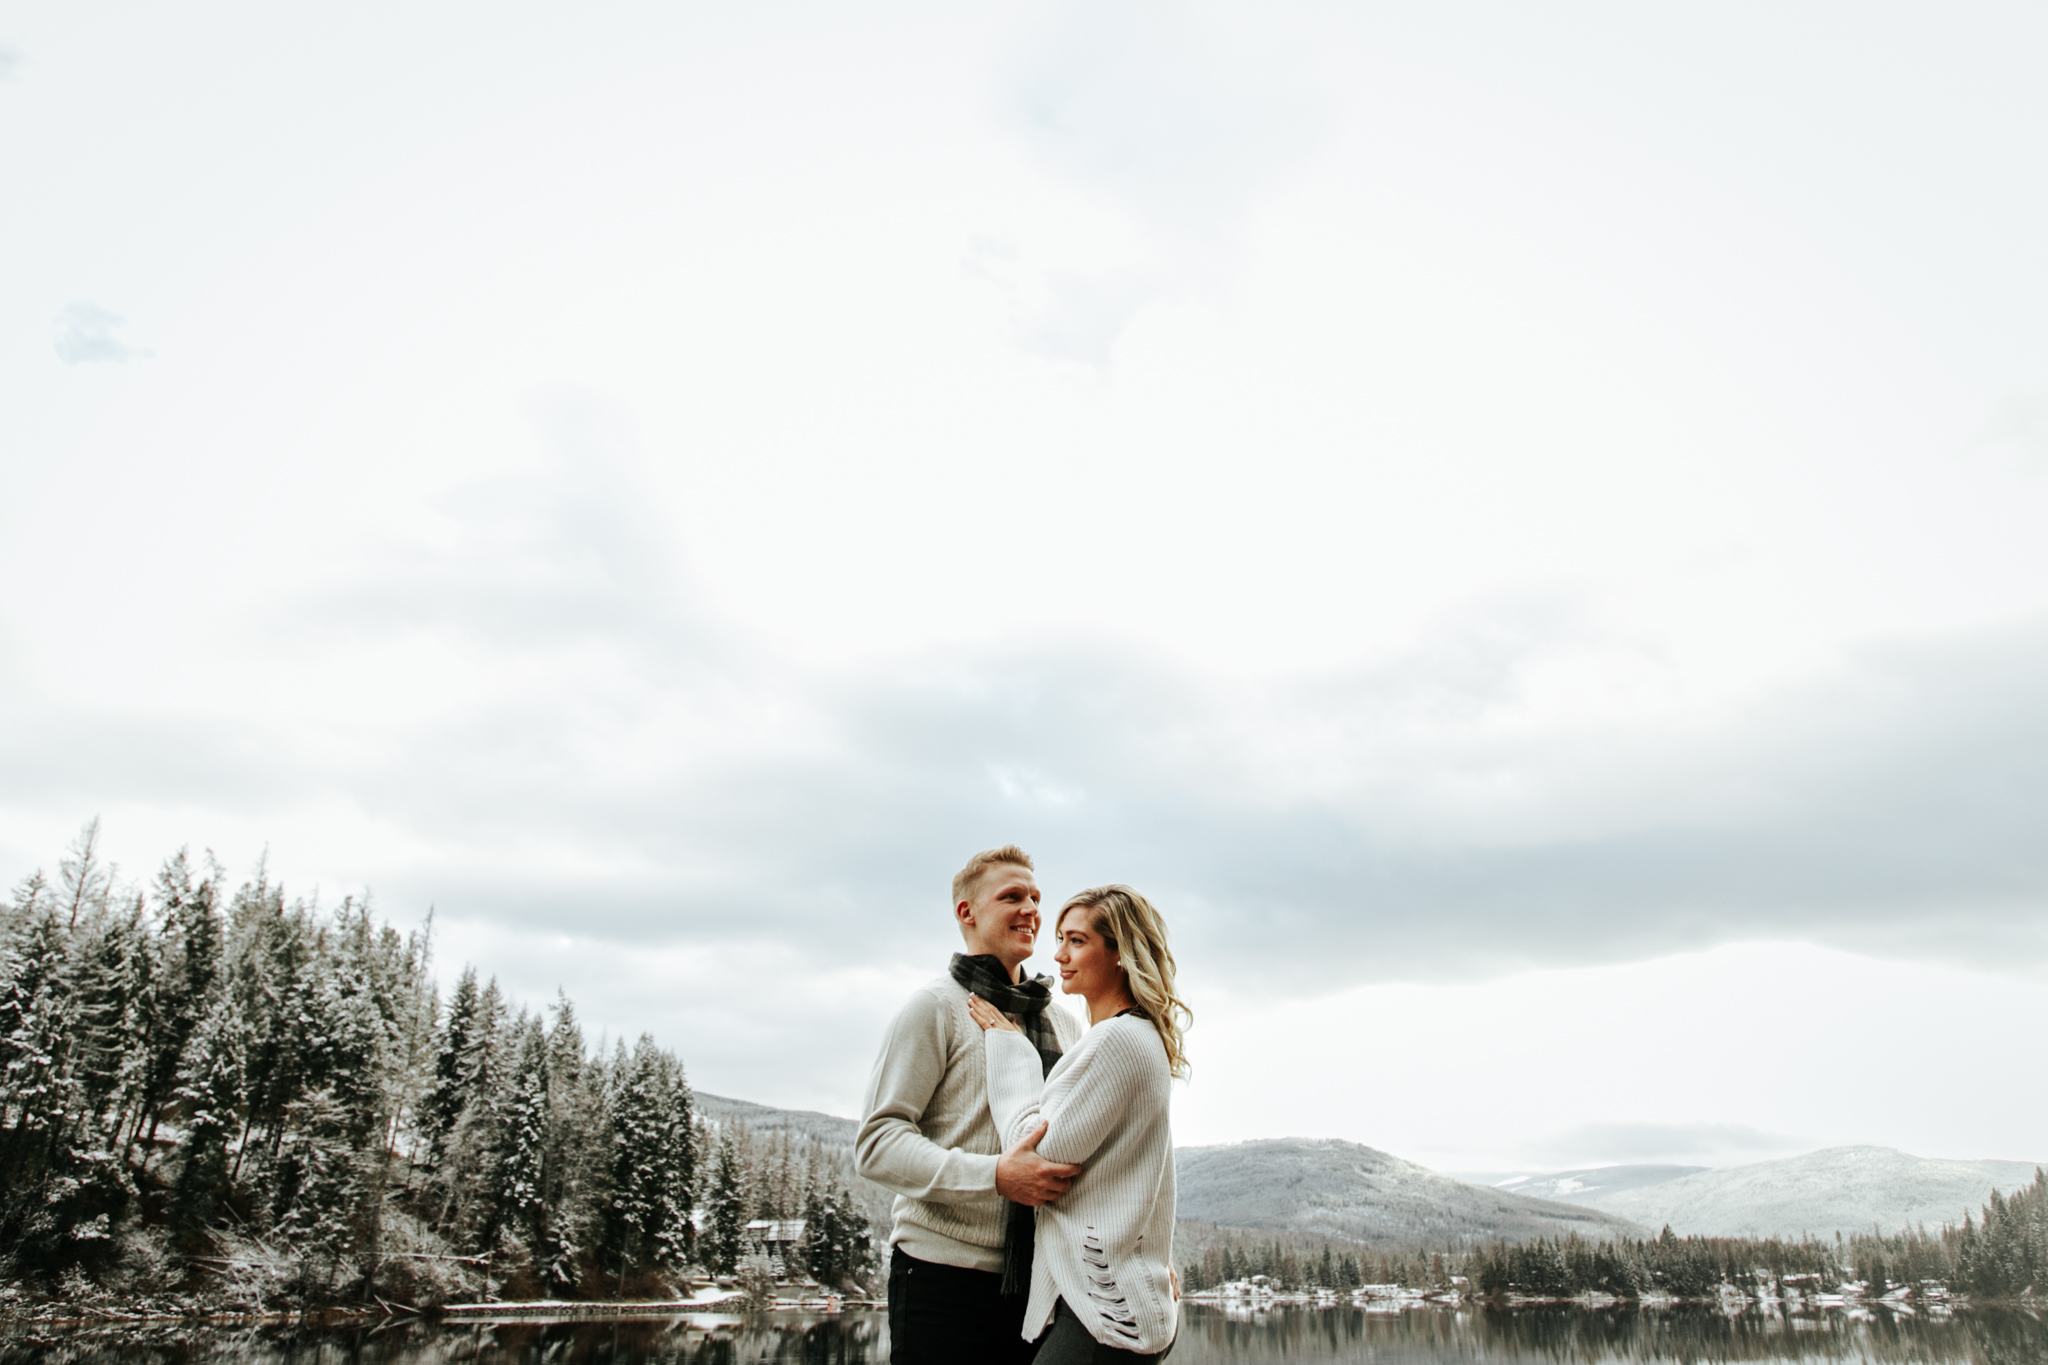 love-and-be-loved-photography-mountain-engagement-ashlyn-rob-perfect-fit-4-u-photo-image-picture-30.jpg